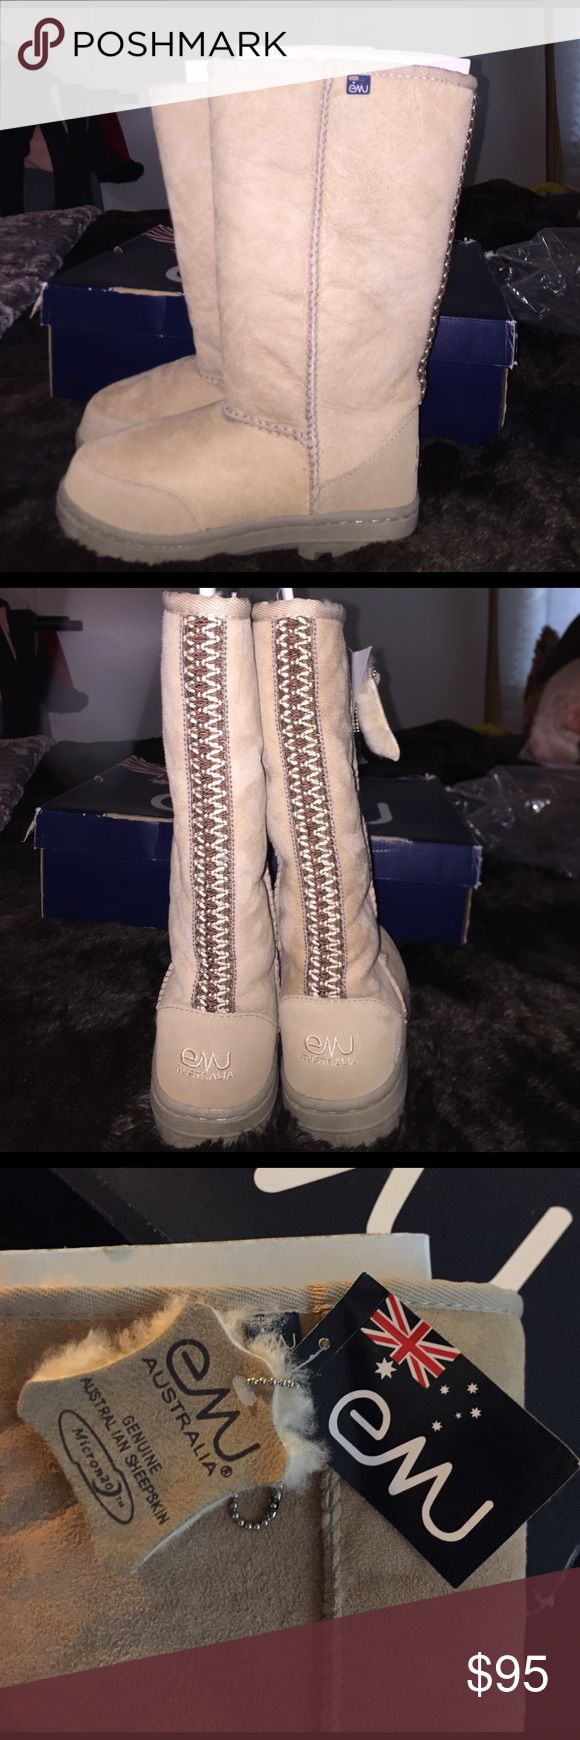 NEW EMU Australia Genuine Sheepskin Boots  Authentic EMU sheepskin boots. Brand new They are super warm and cute :) THEY ARE SIZE 7 IN WOMENS AND SIZE 5 IN MENS. Emu Shoes Winter & Rain Boots